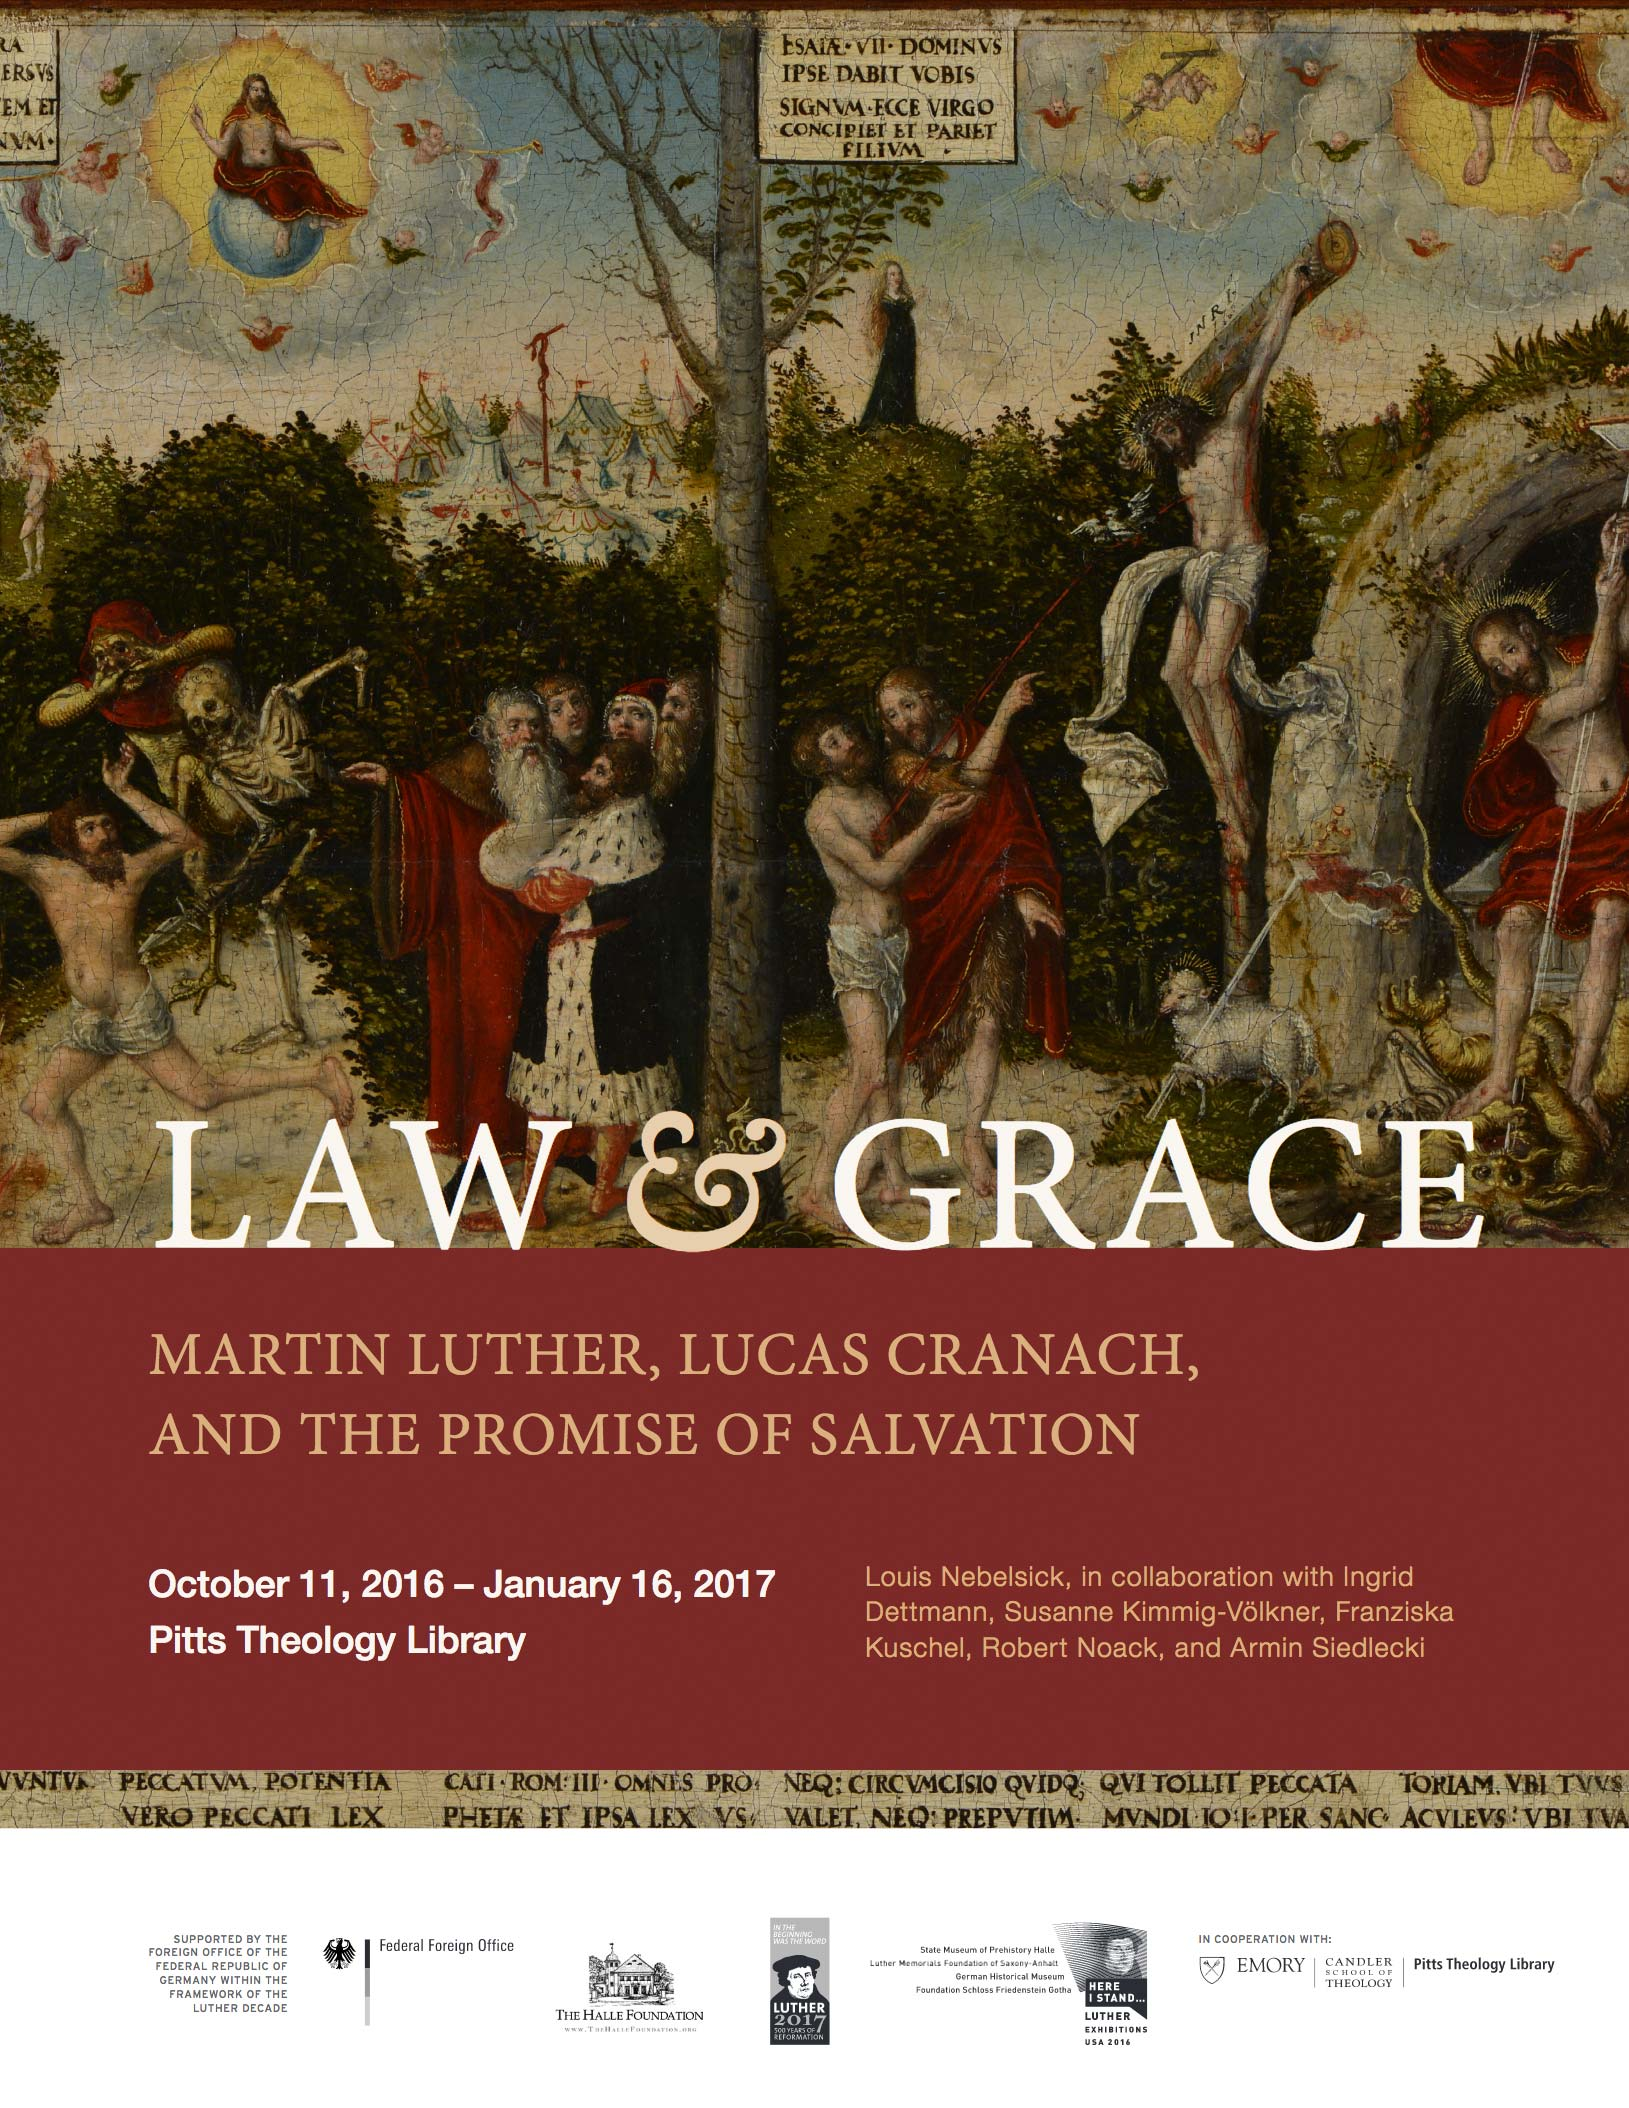 Law and Grace: Martin Luther, Lucas Cranach, and the Promise of Salvation